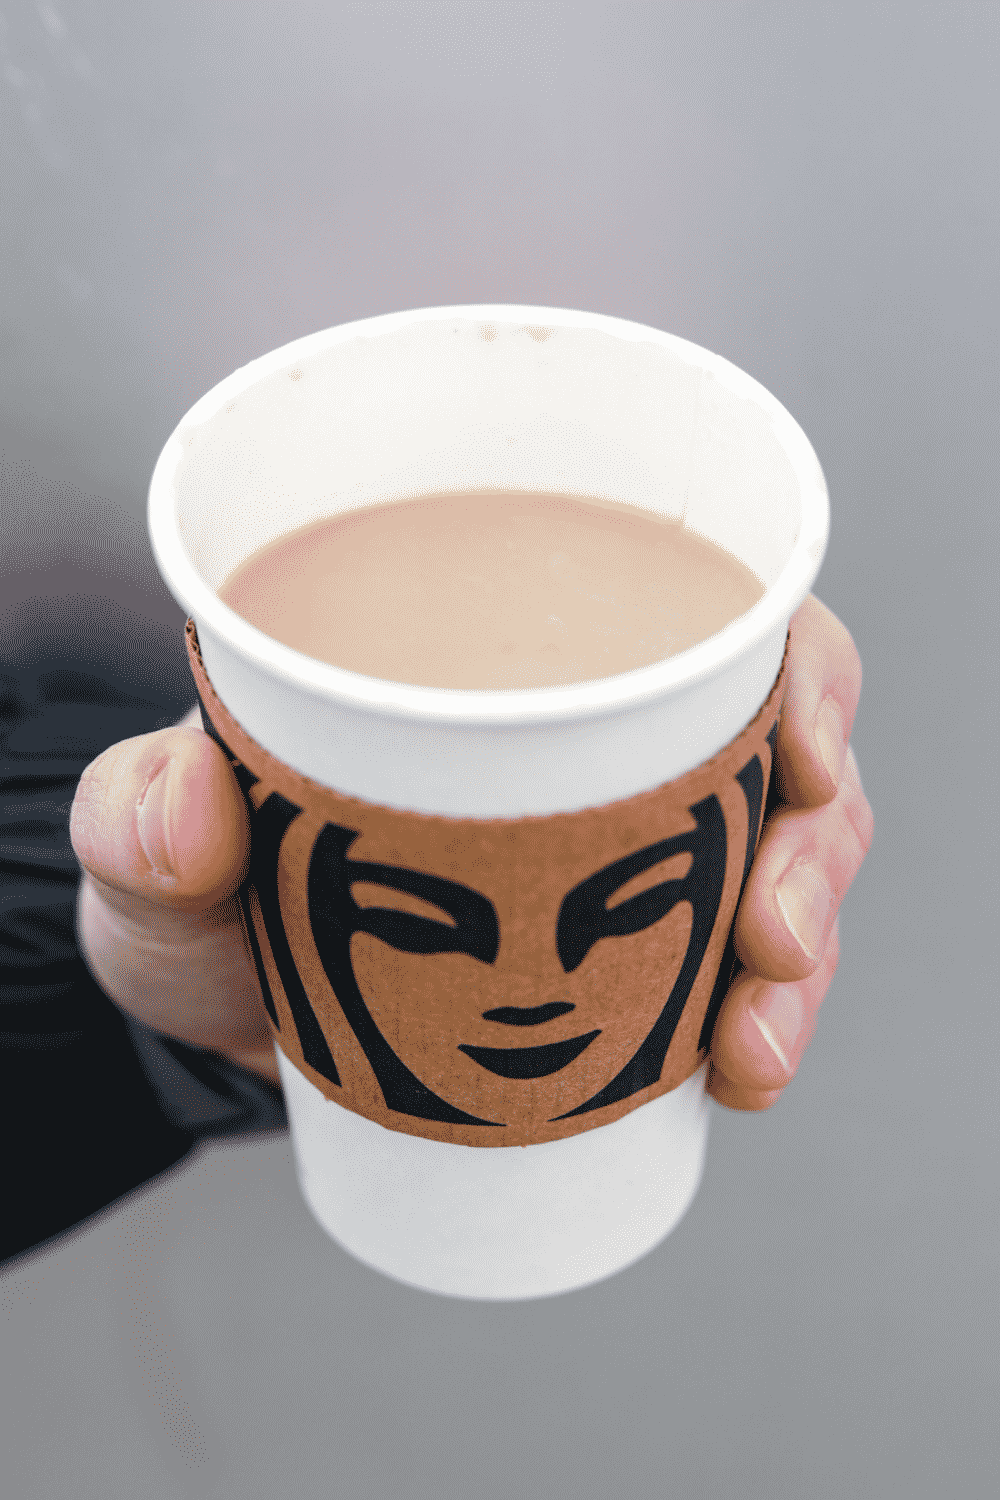 A hand holding a cup of Starbucks latte with almond milk.